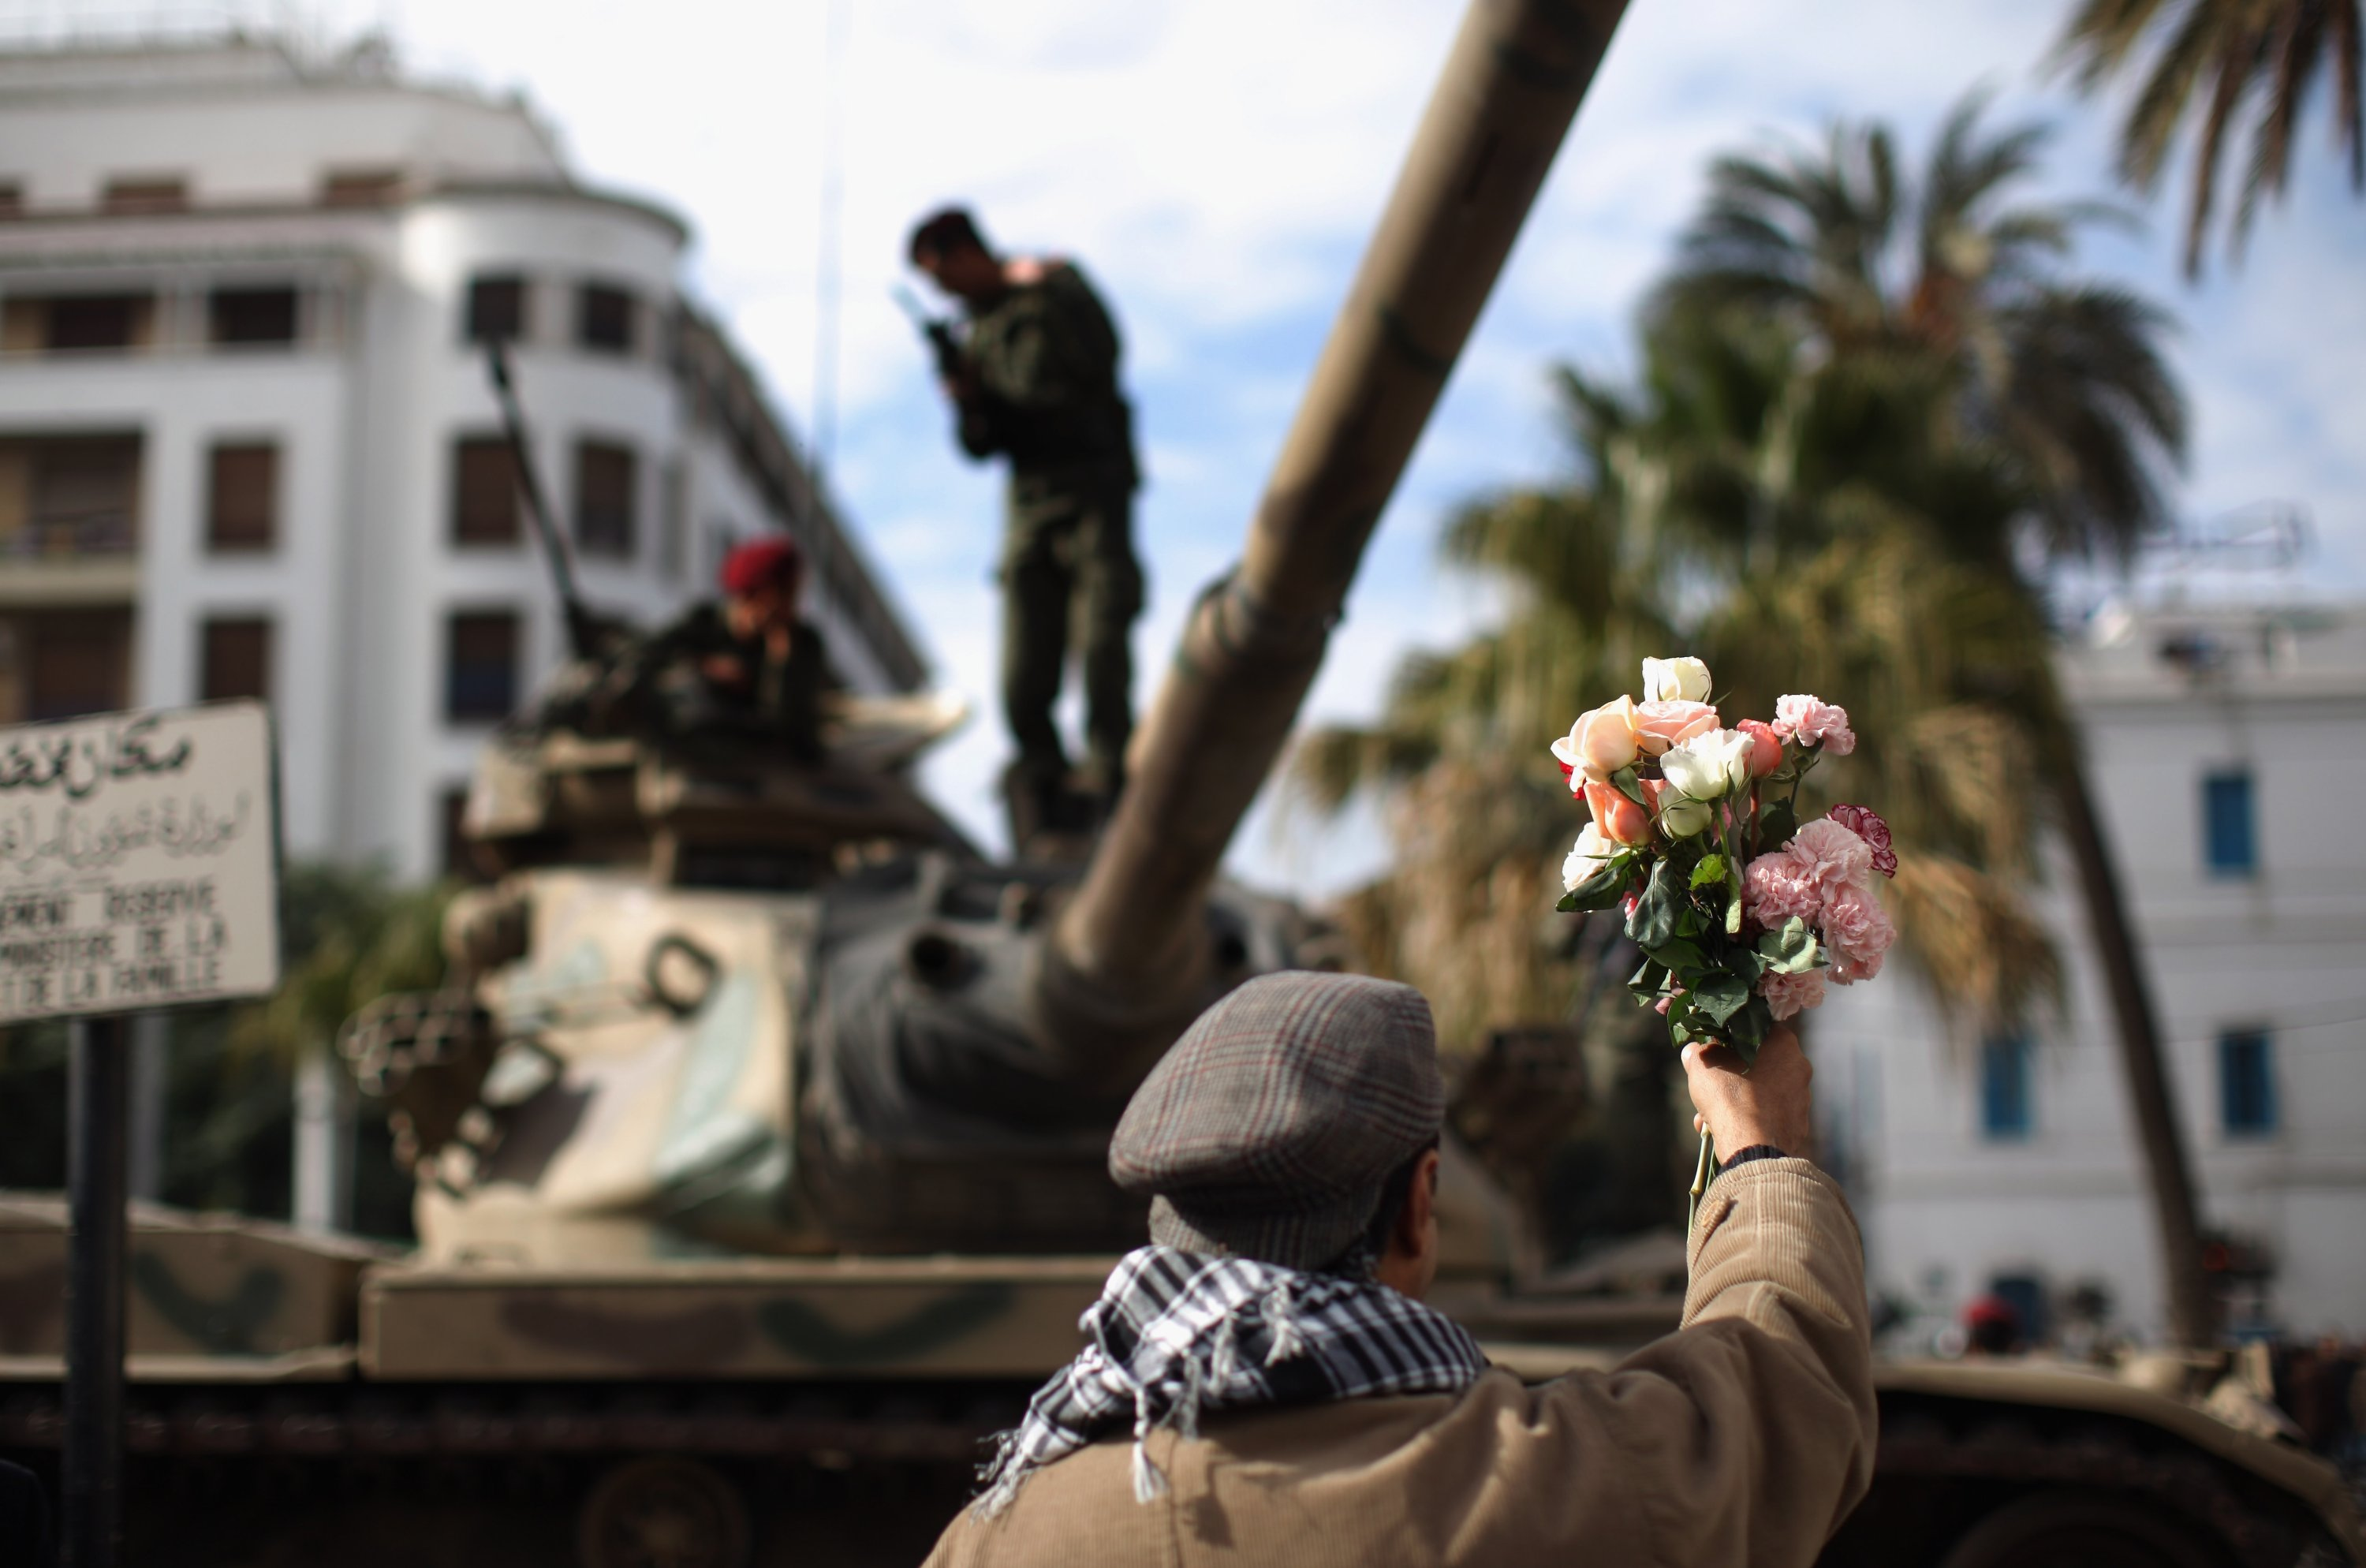 A demonstrator offers flowers to soldiers on their tank as an uneasy peace hangs over Tunisia, in Tunis, Tunisia, Jan. 21, 2011. (Photo by Getty Image)